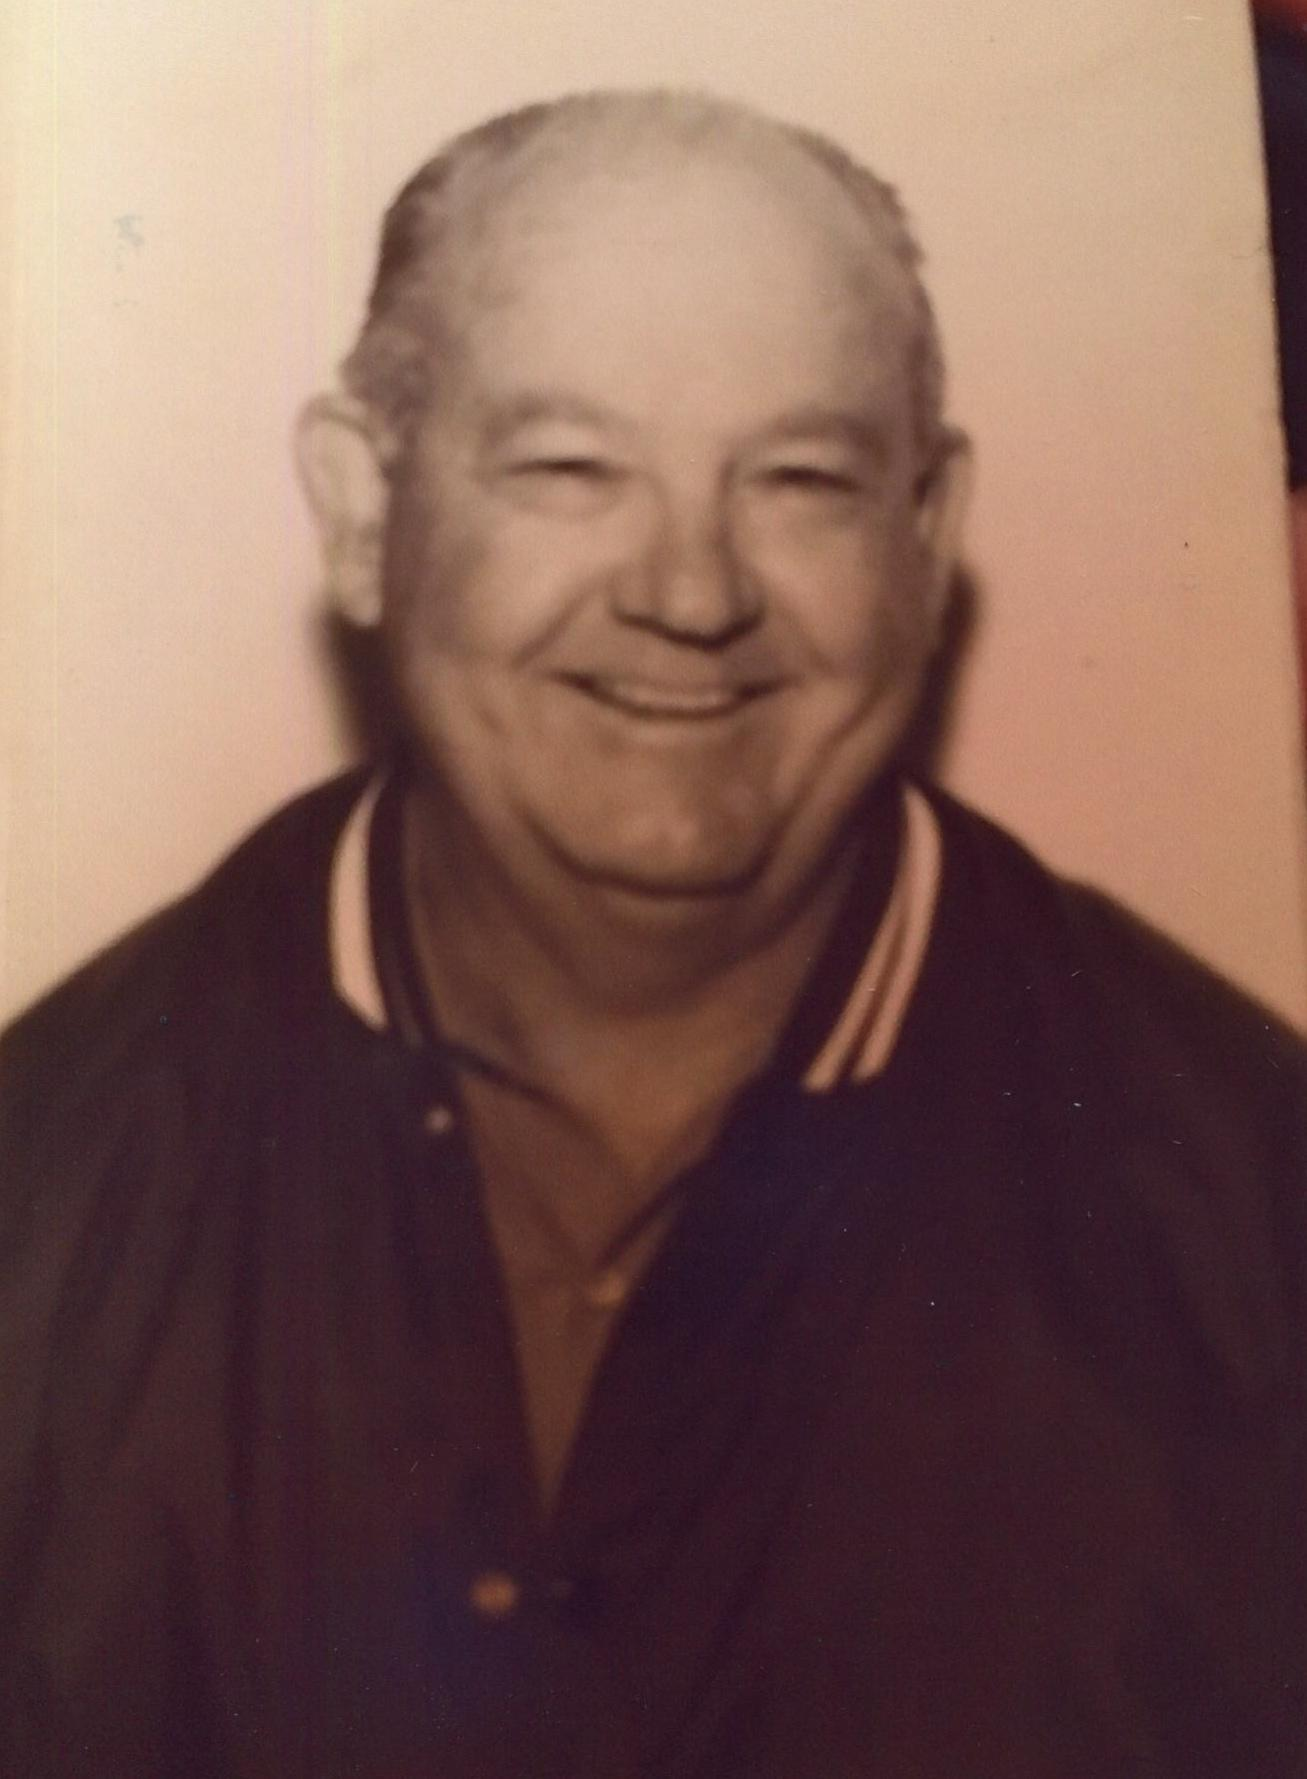 Mr. Hastings was known for his infectious laugh, which could lift even the most jaded spirits